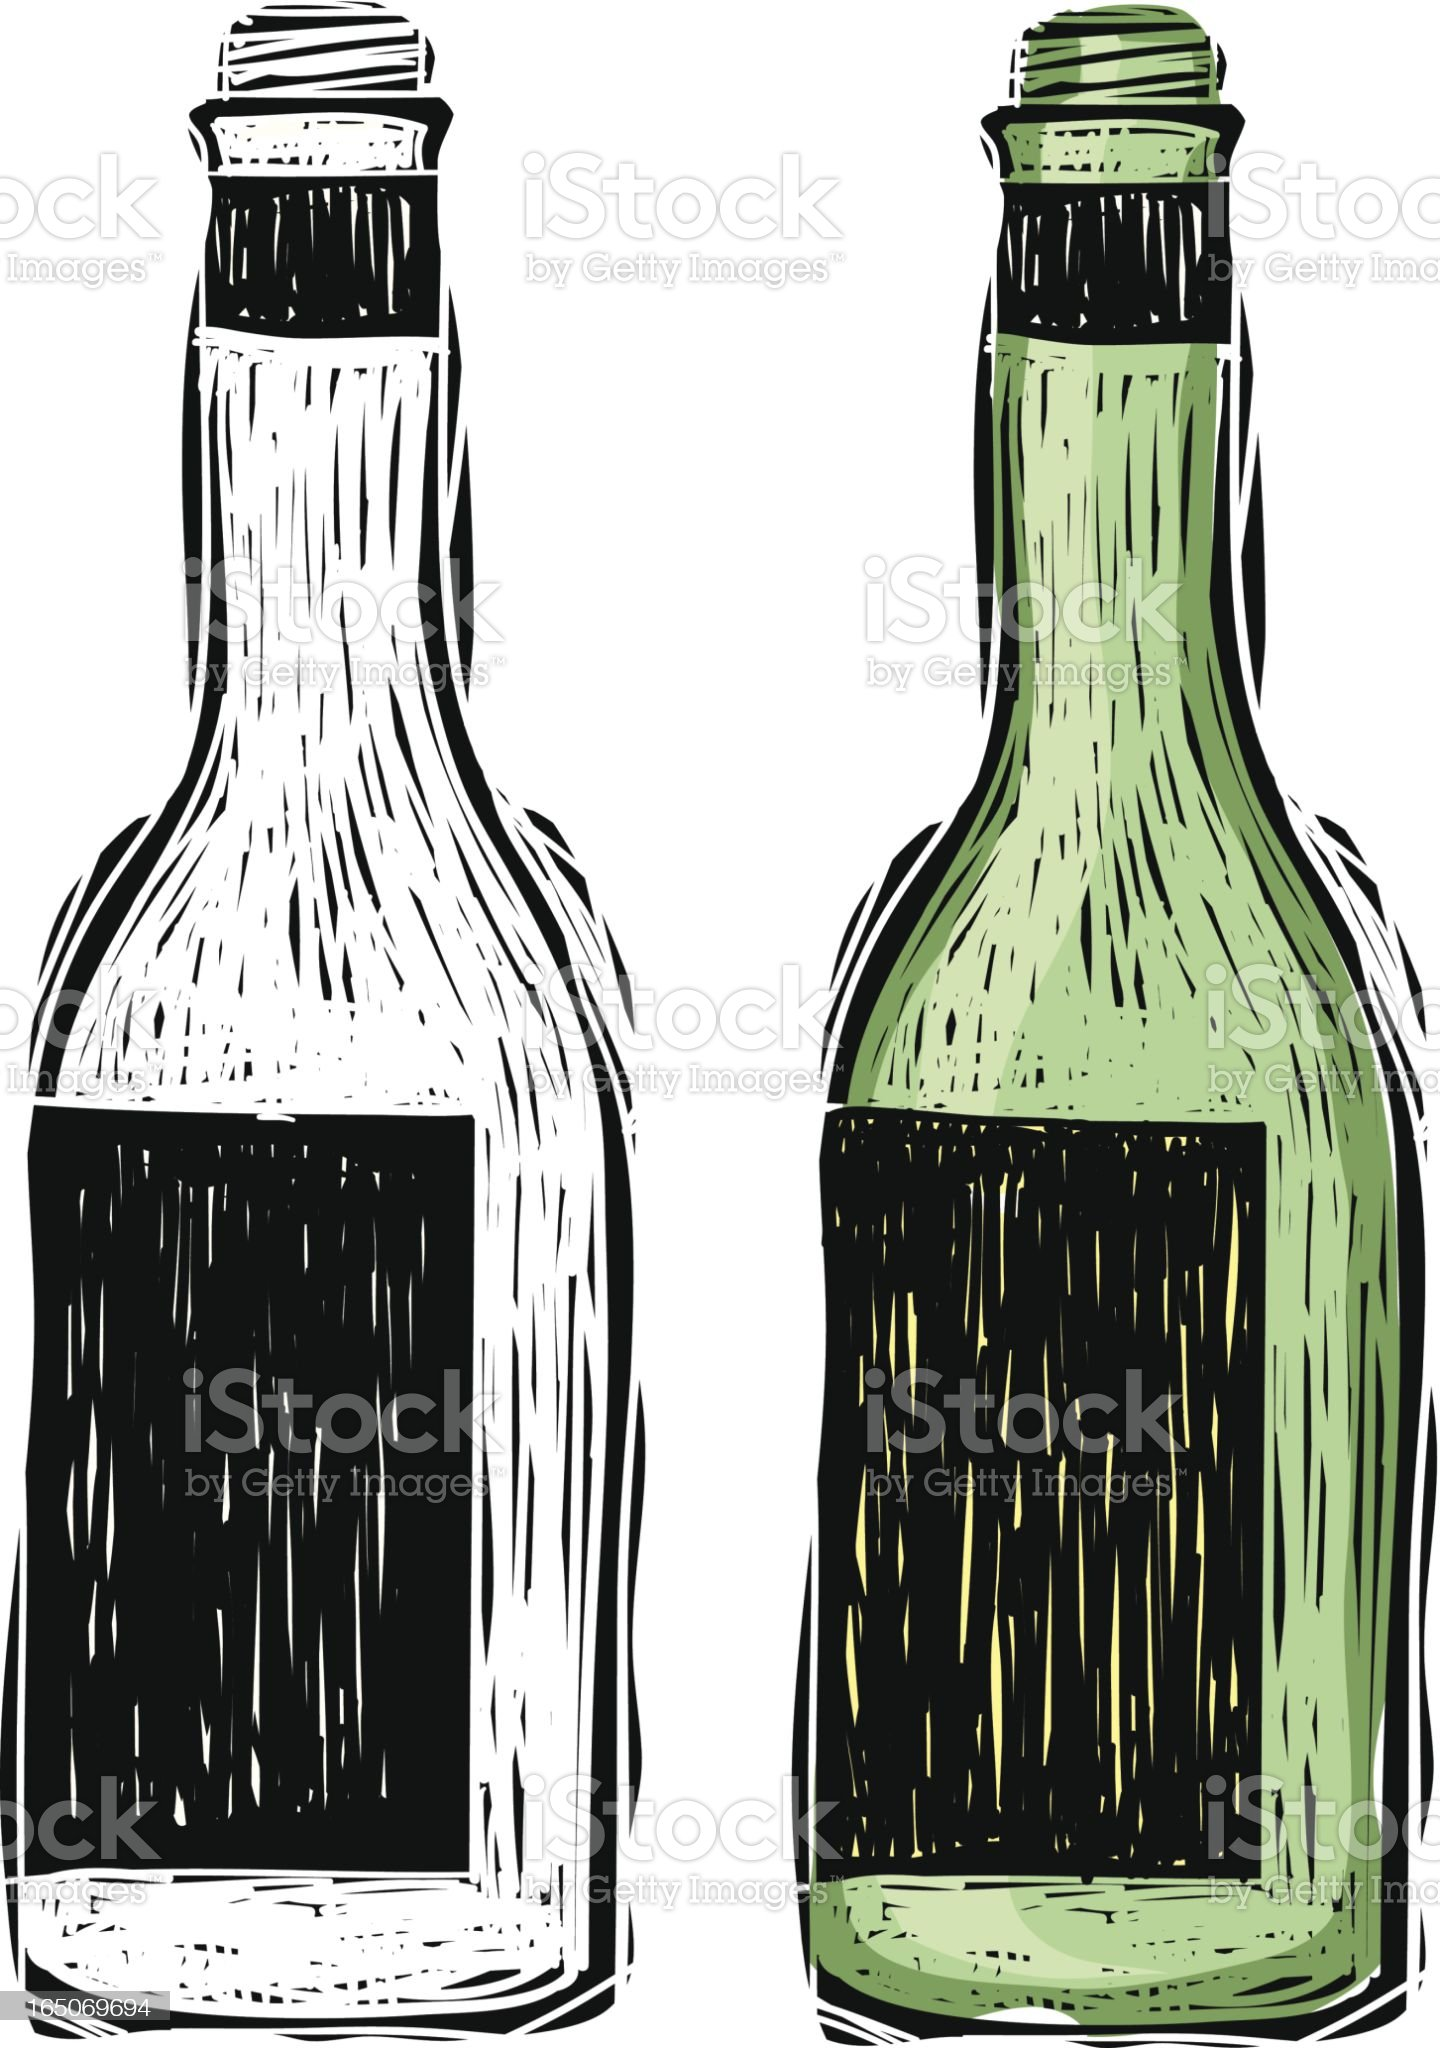 Wine Bottle royalty-free stock vector art